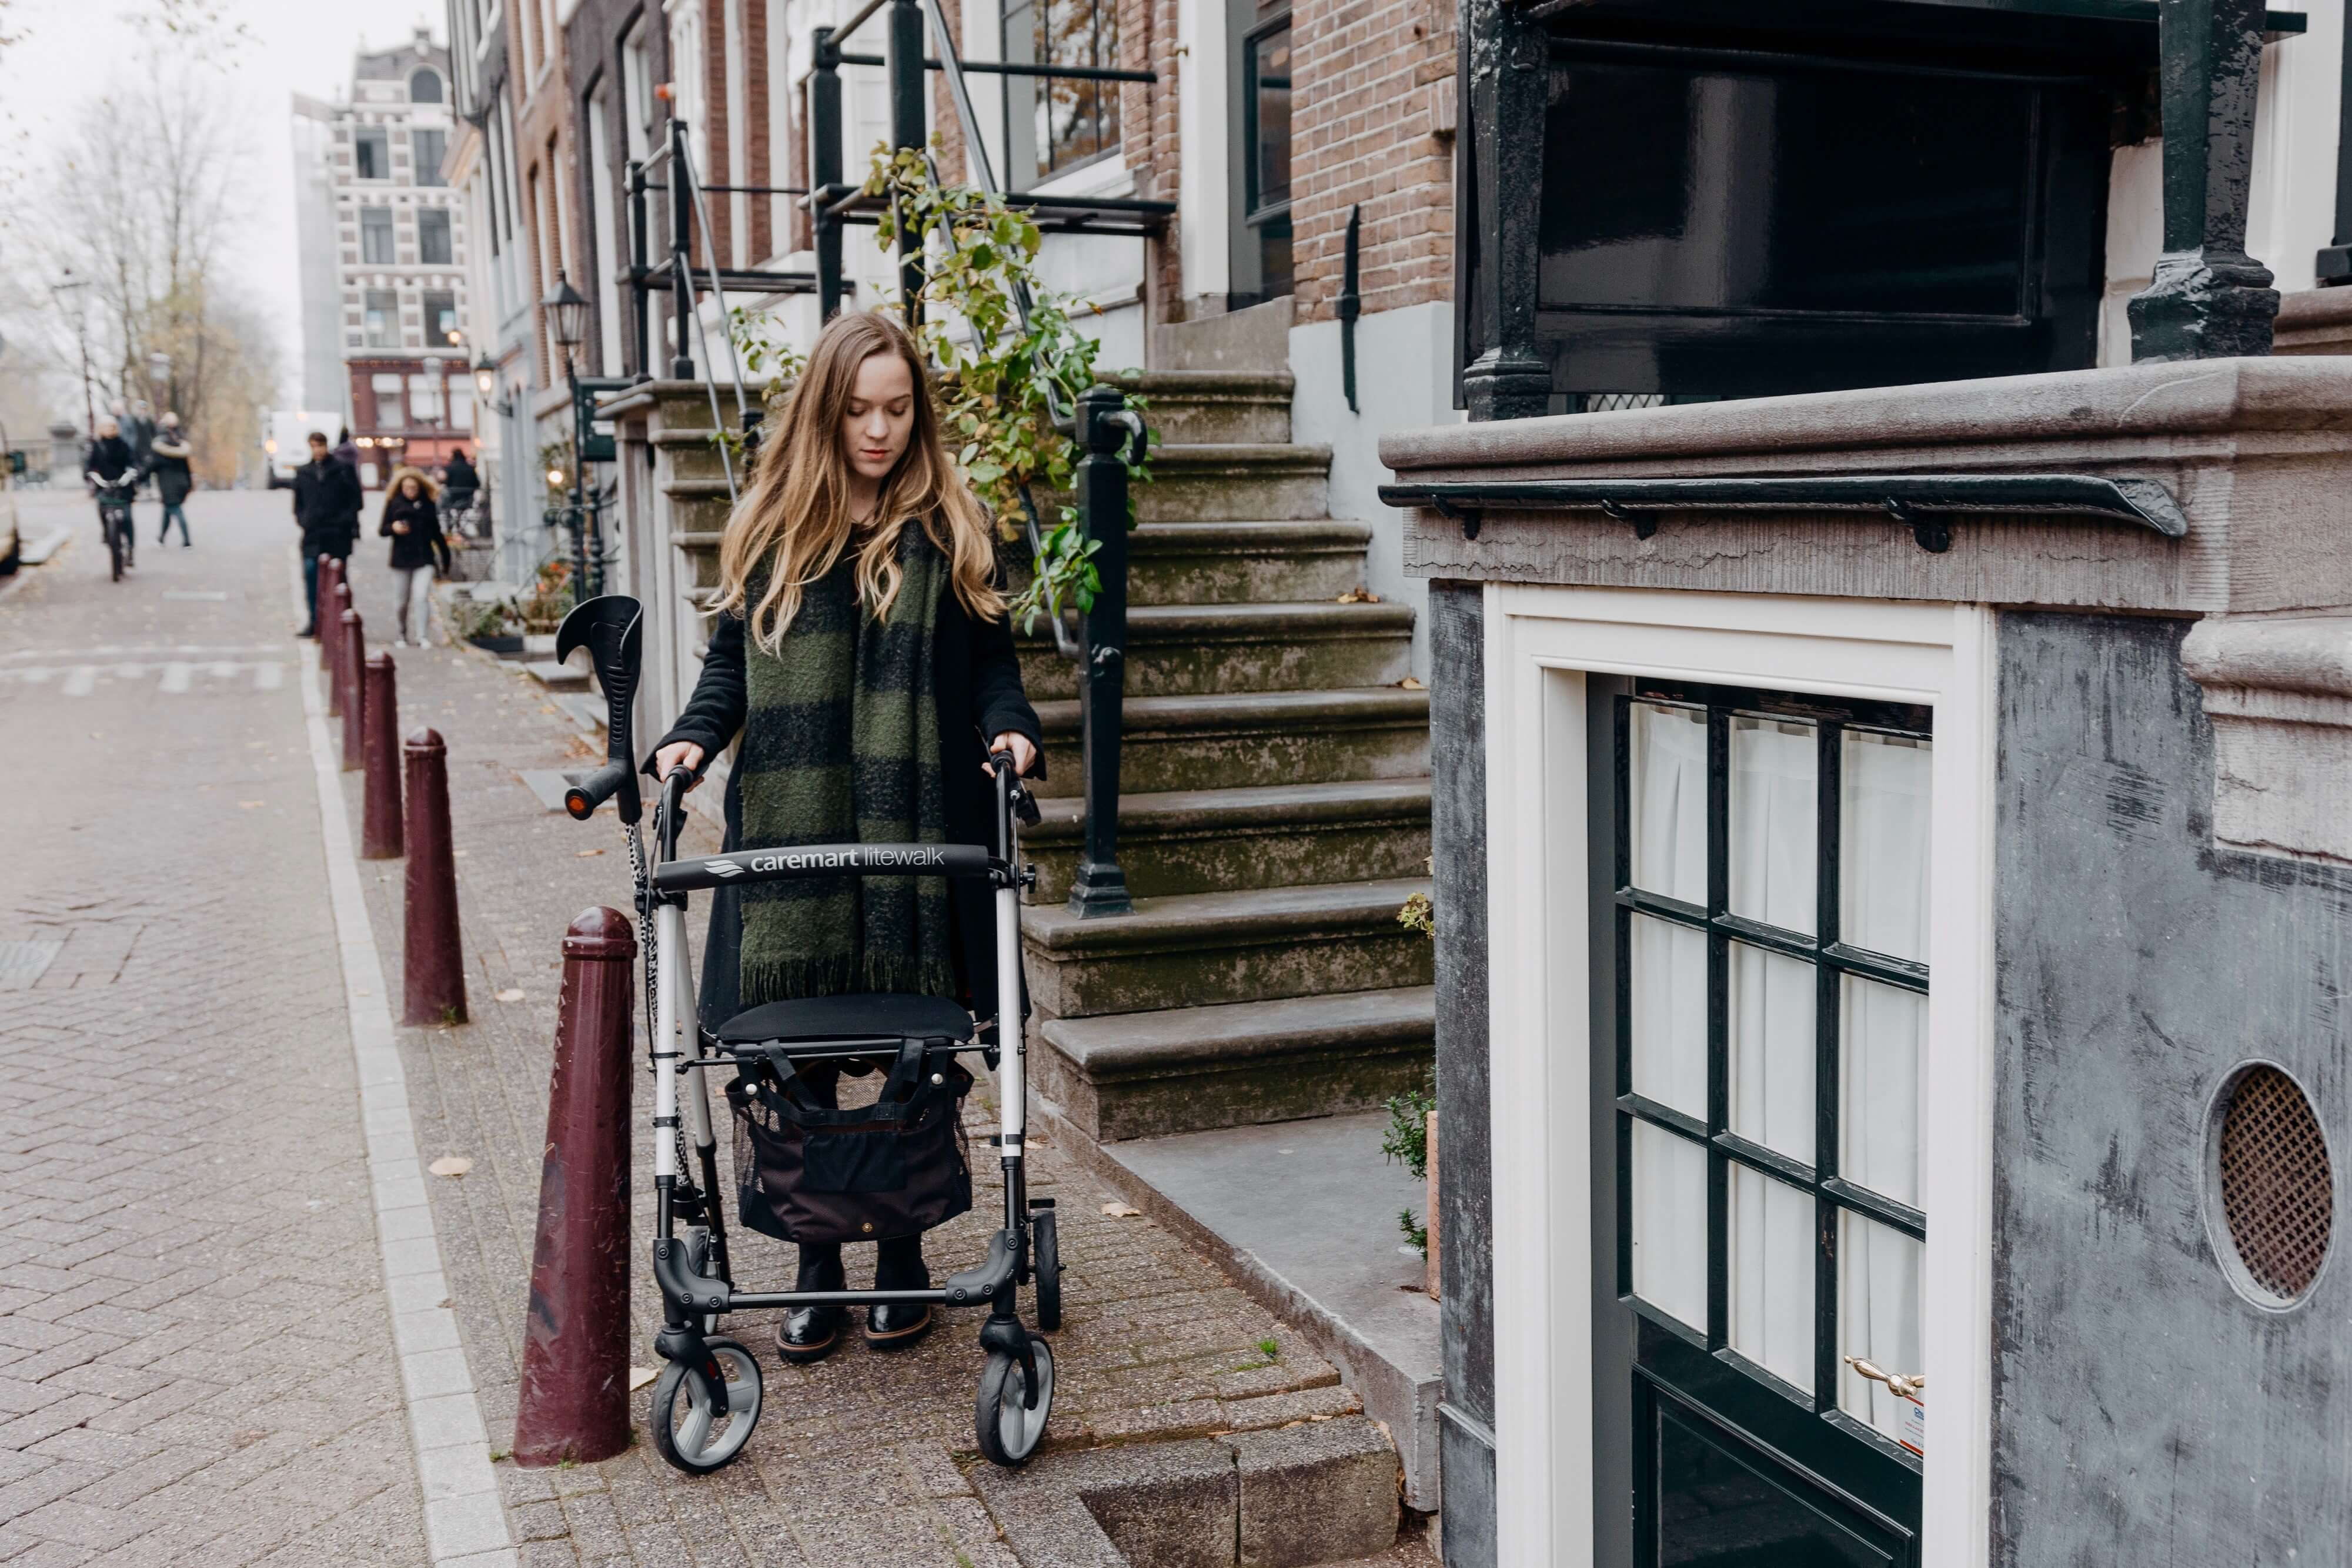 Are you Able in Amsterdam?